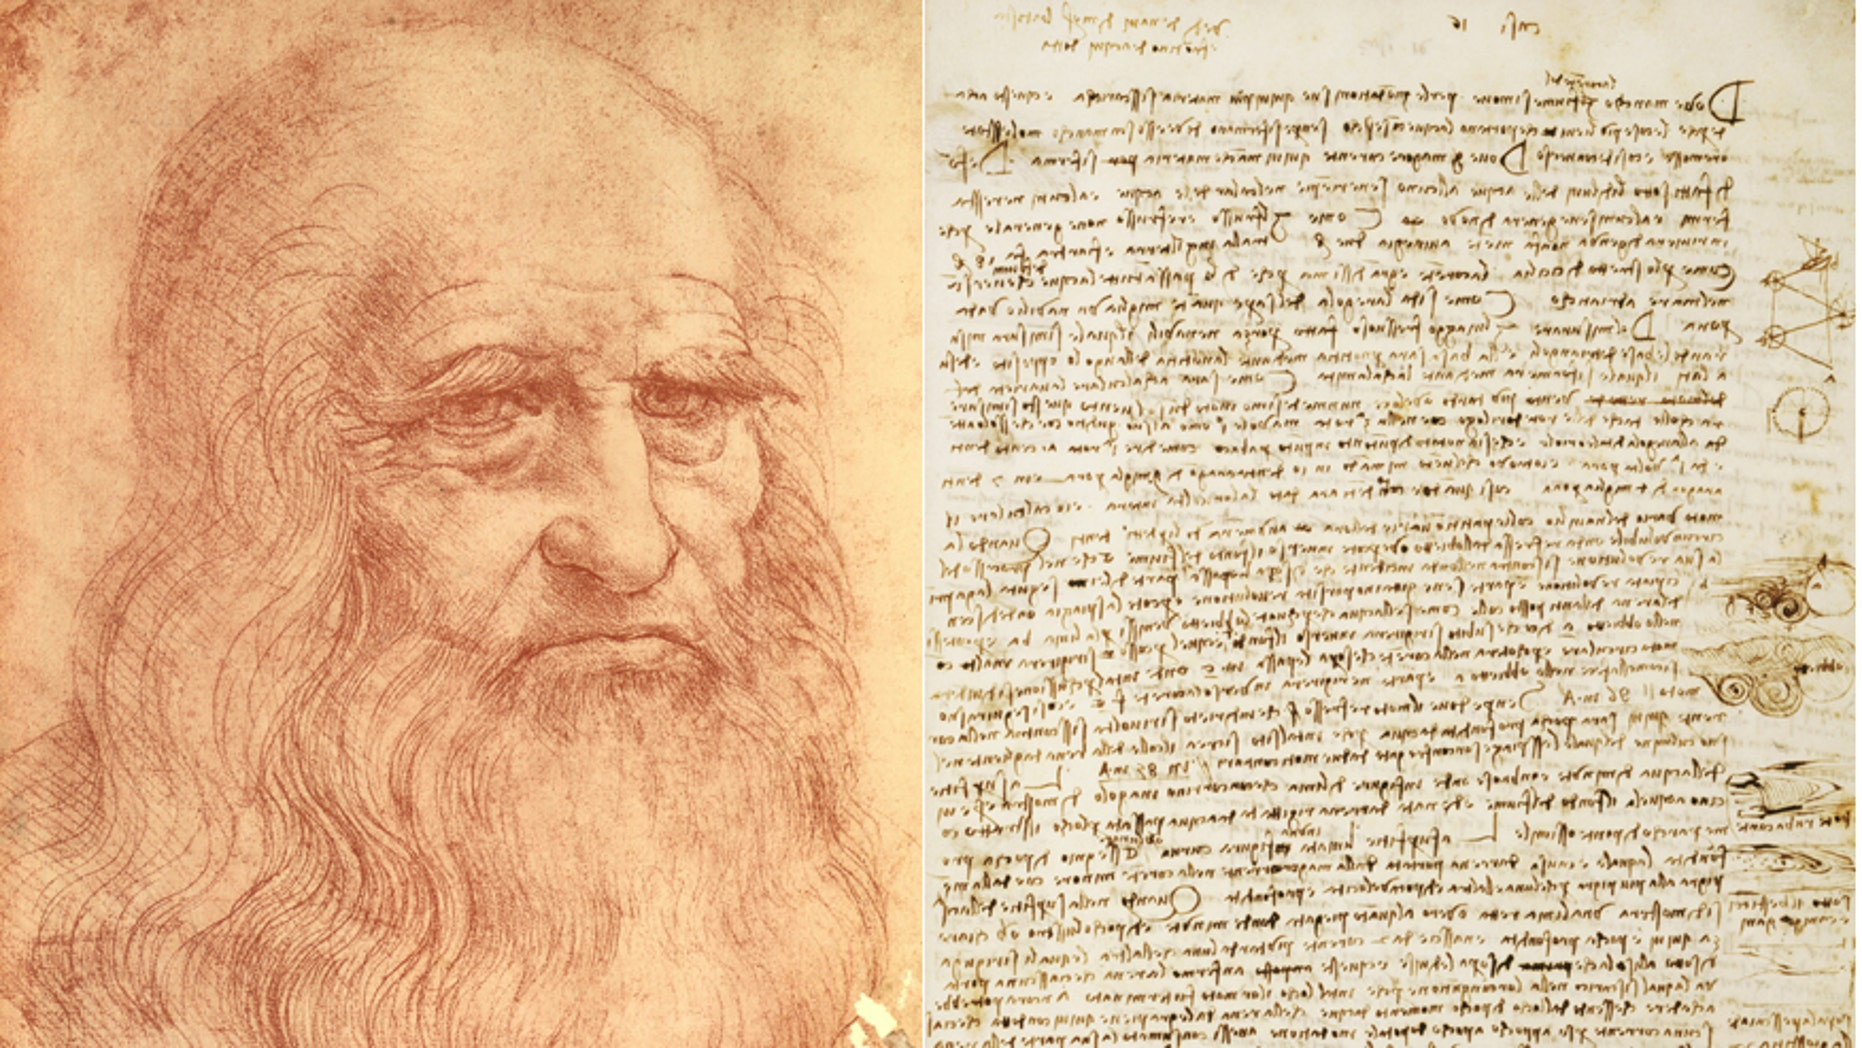 Sketch of Italian polymath Leonardo da Vinci/a sheet of the Codex Leicester.